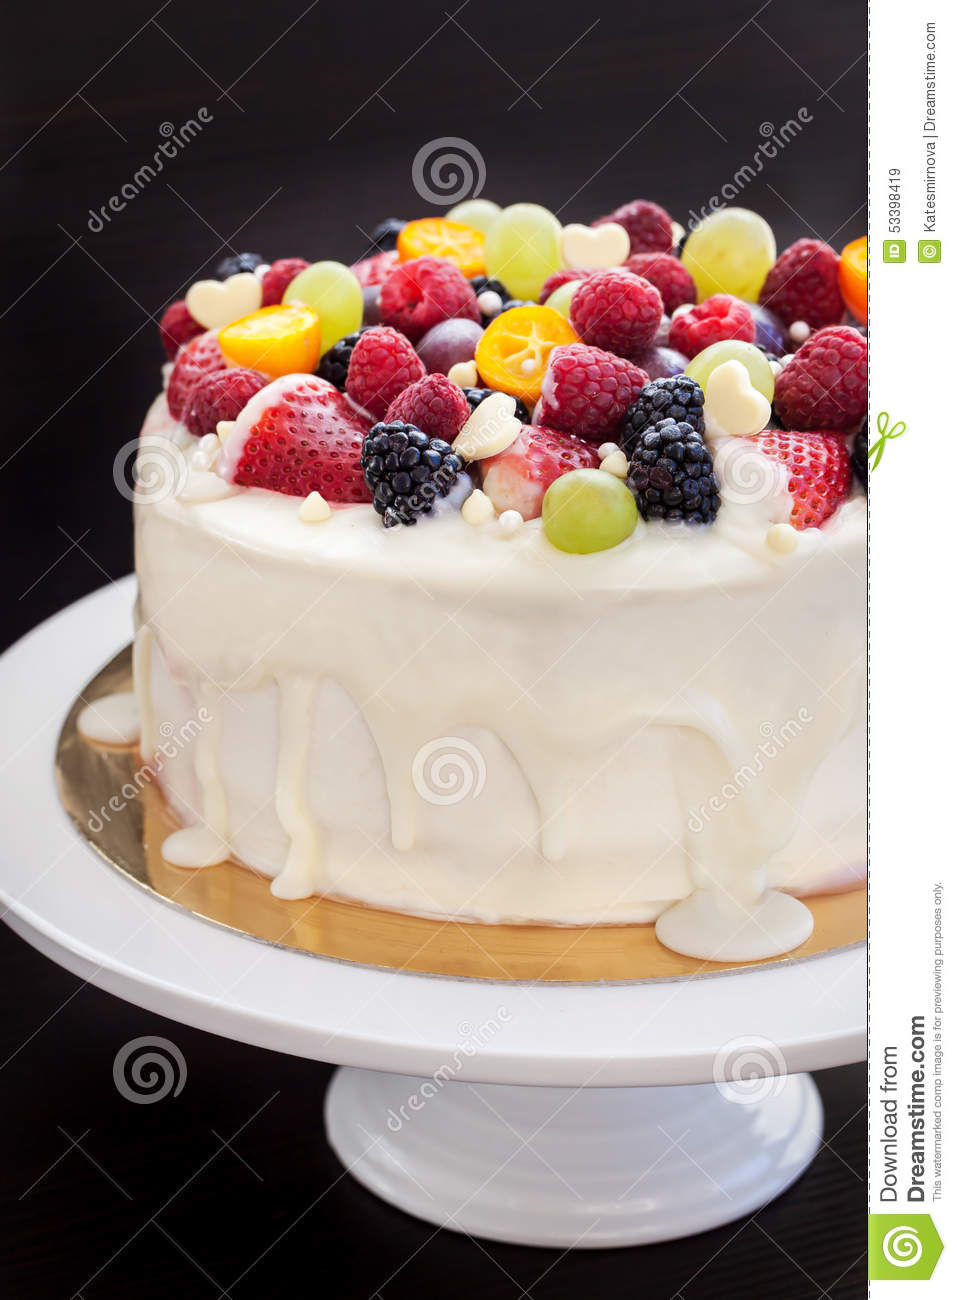 White Chocolate Cake Decorated With Fresh Berries And